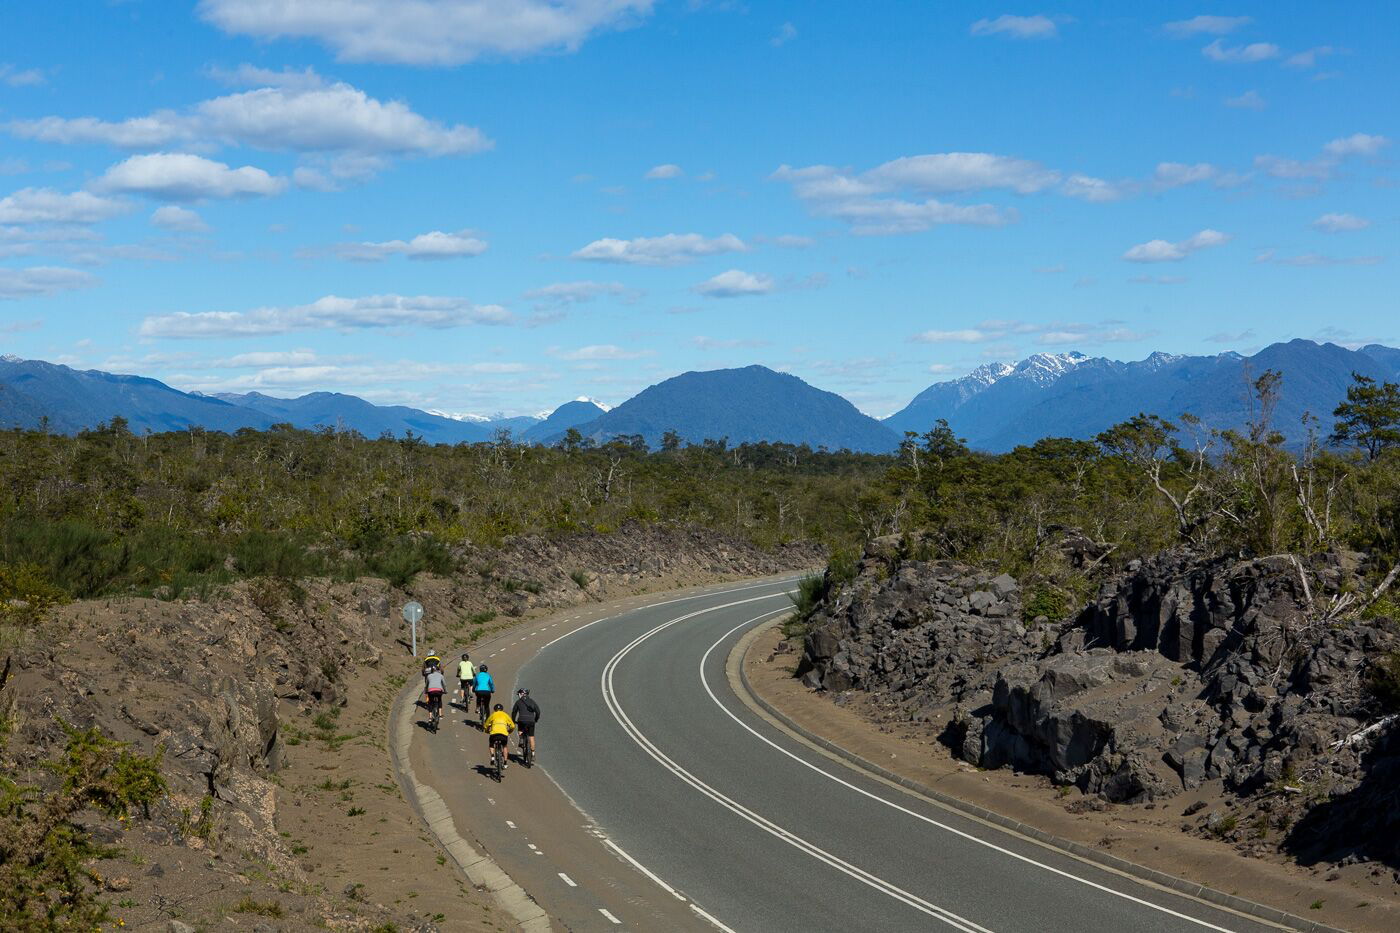 Bicycle Route, Chile, Supplier Photo (Upscape)